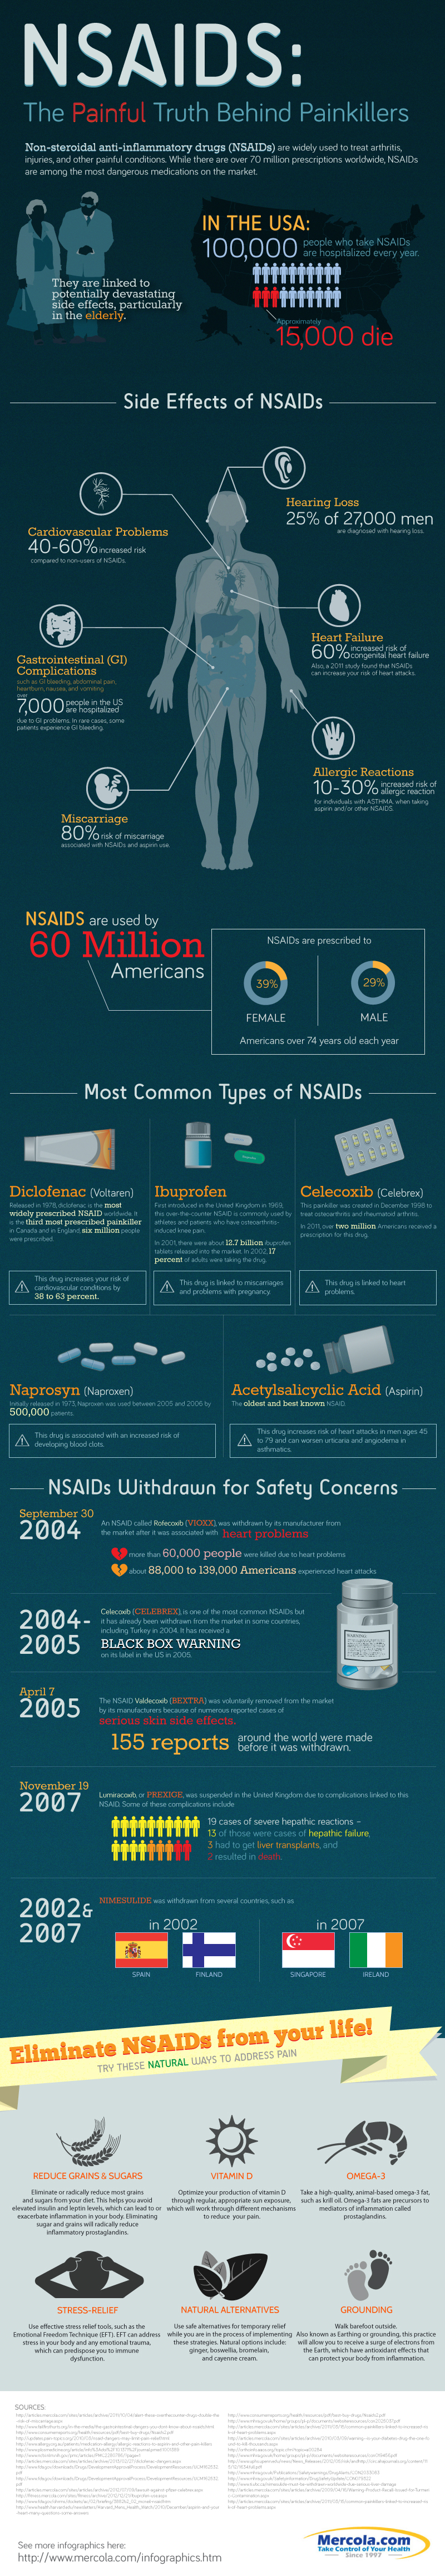 NSAIDs: Shocking Facts About Painkillers Infographic